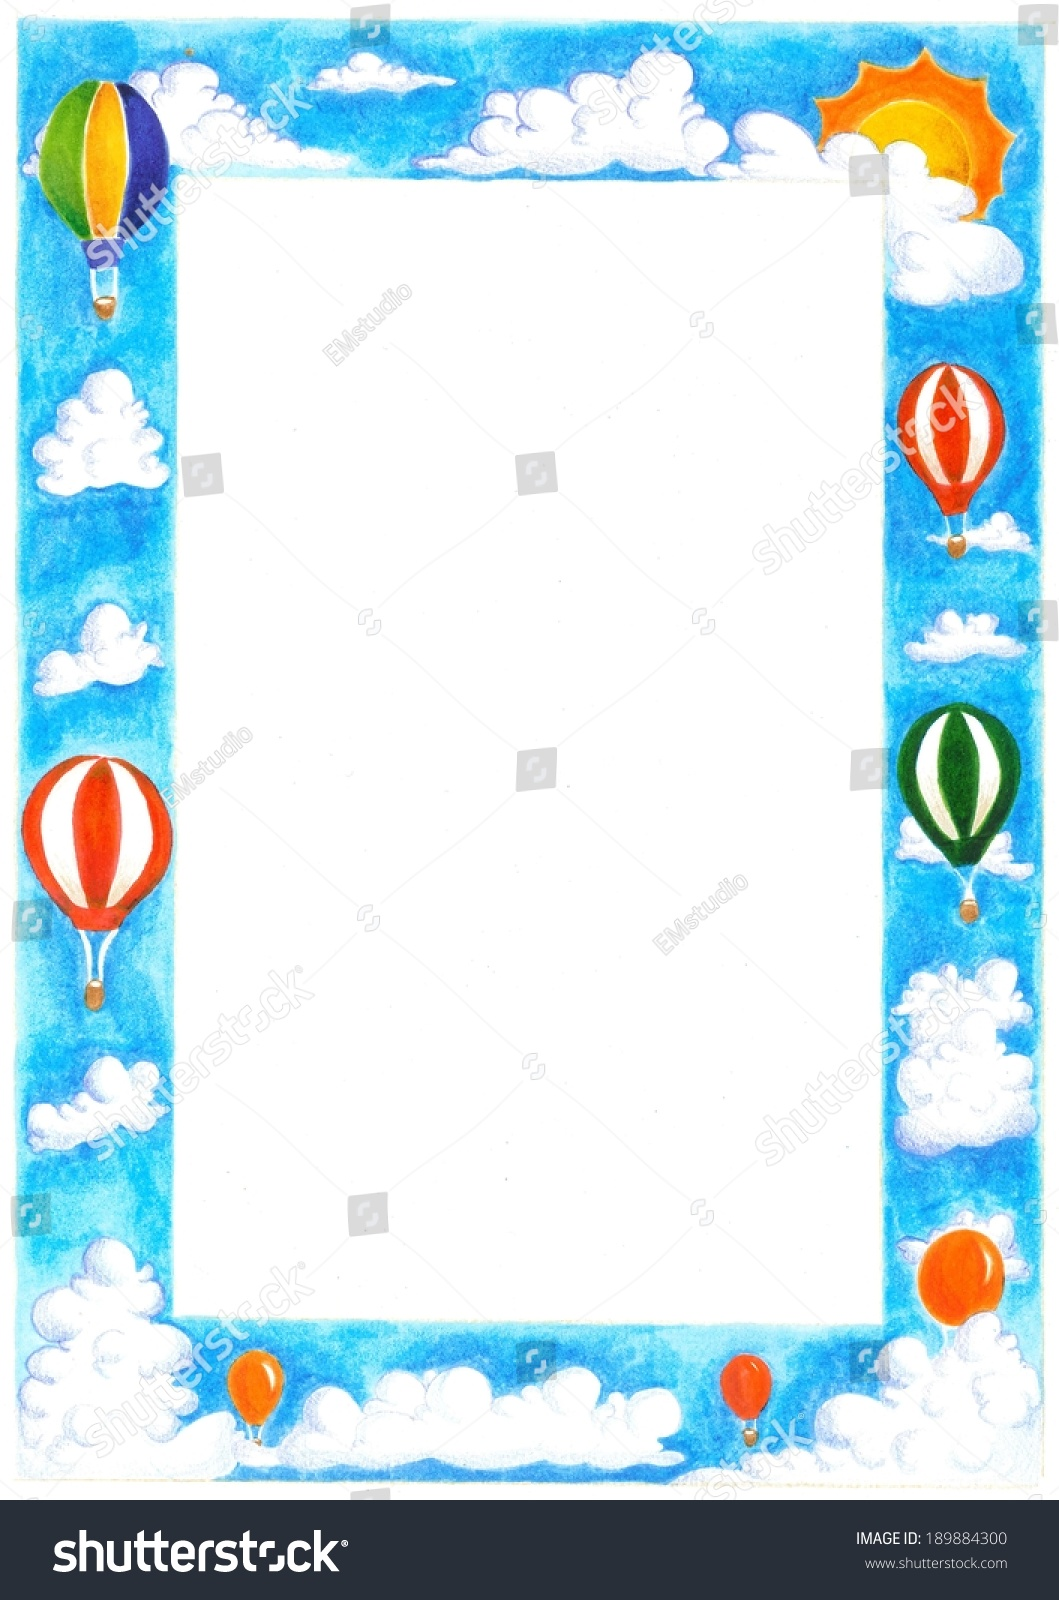 hot air balloon frame stock photo 189884300 shutterstock